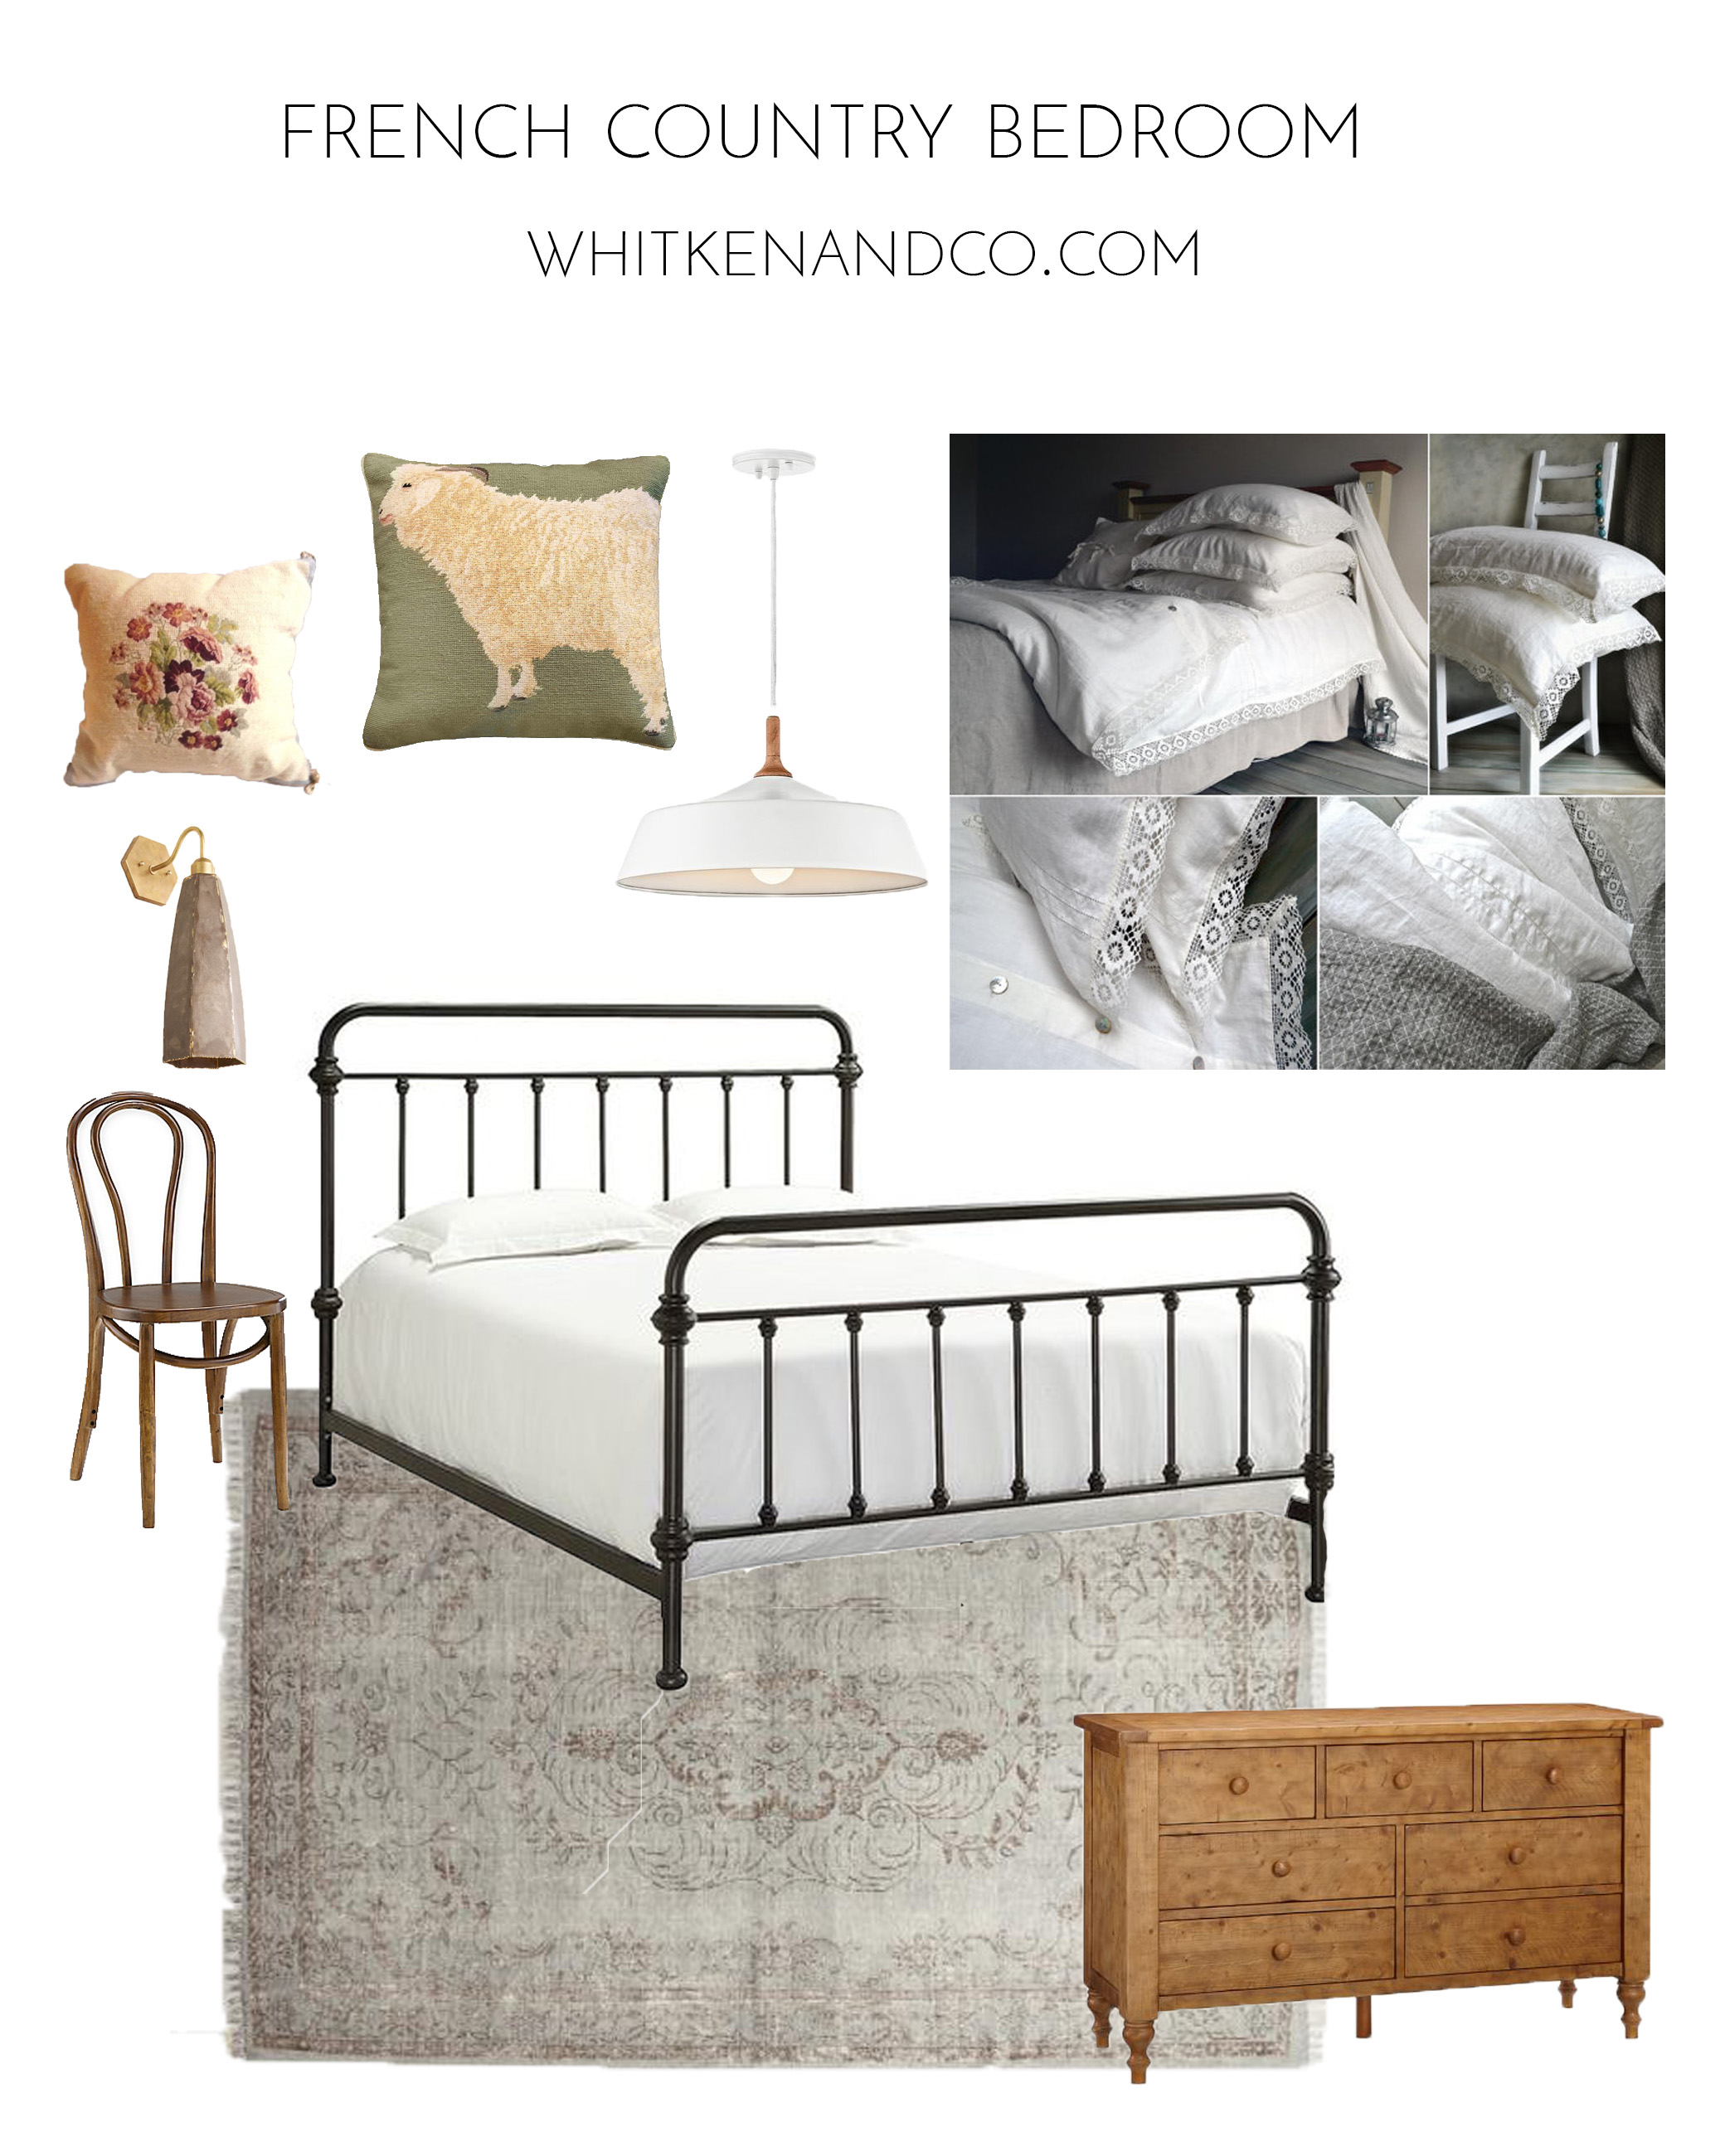 Rustic French Country Bedroom - Whitken & Co.